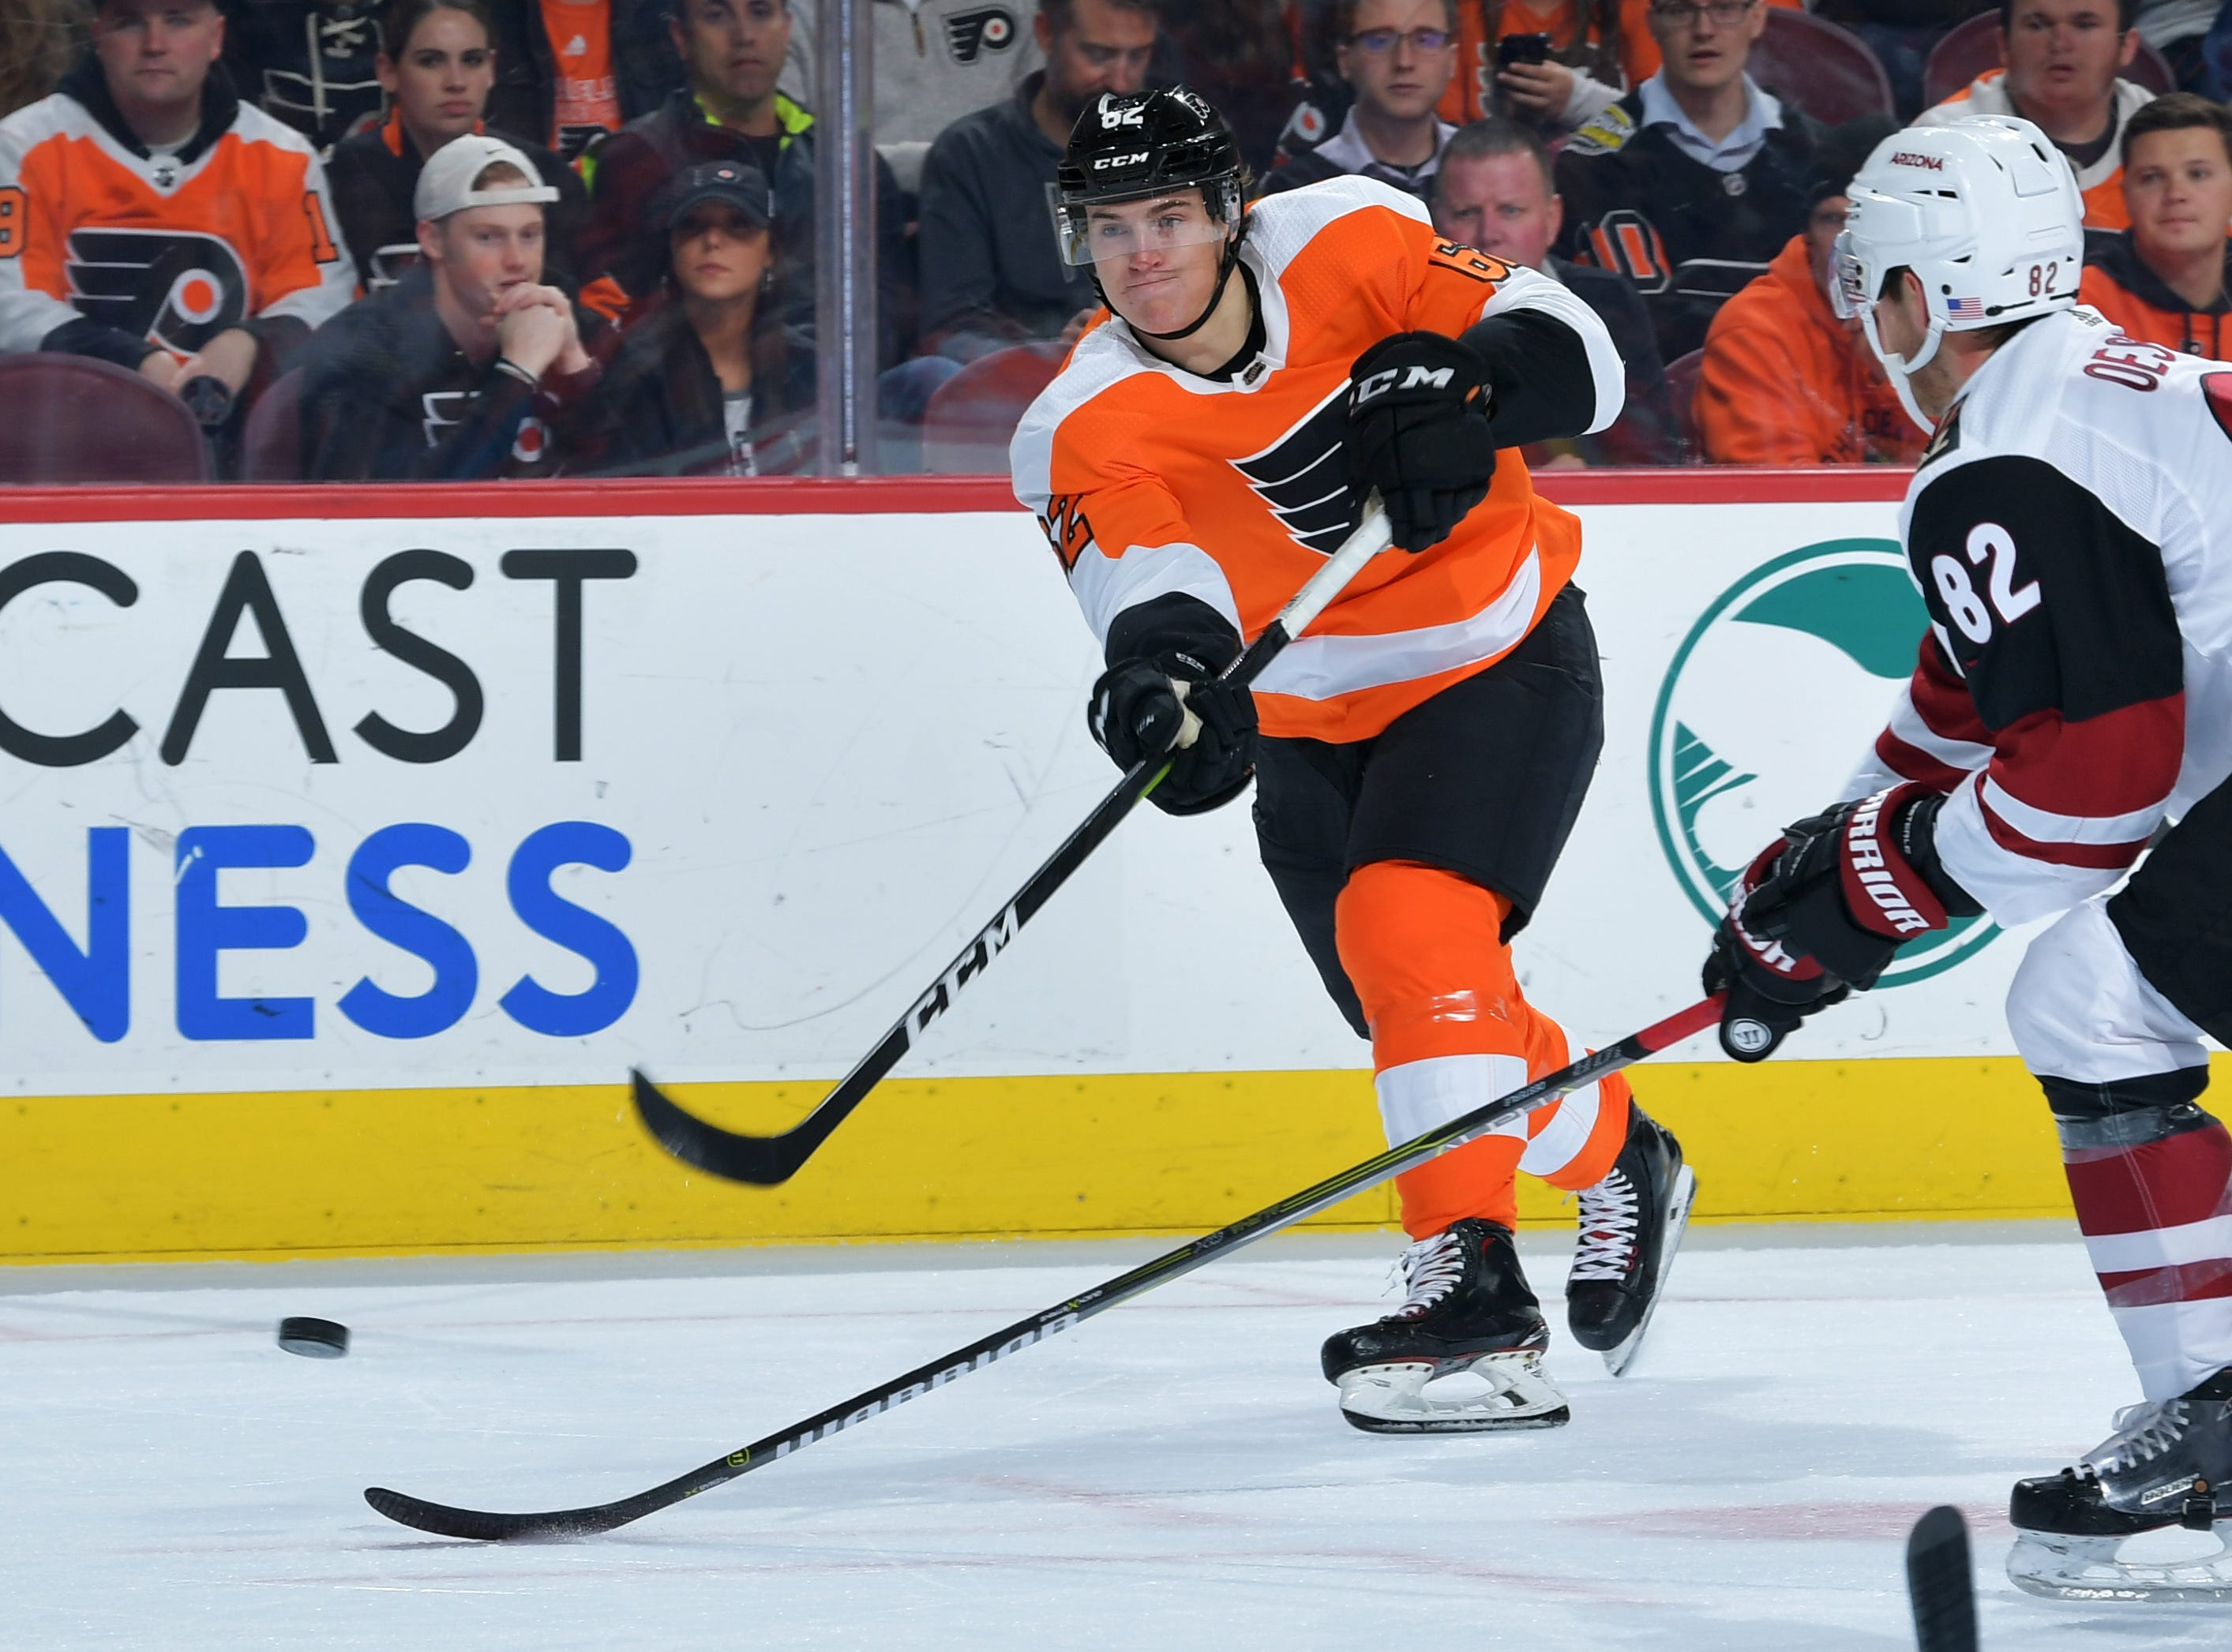 Nicolas Aube-Kubel staying in Flyers lineup, 'fighting for ice time'